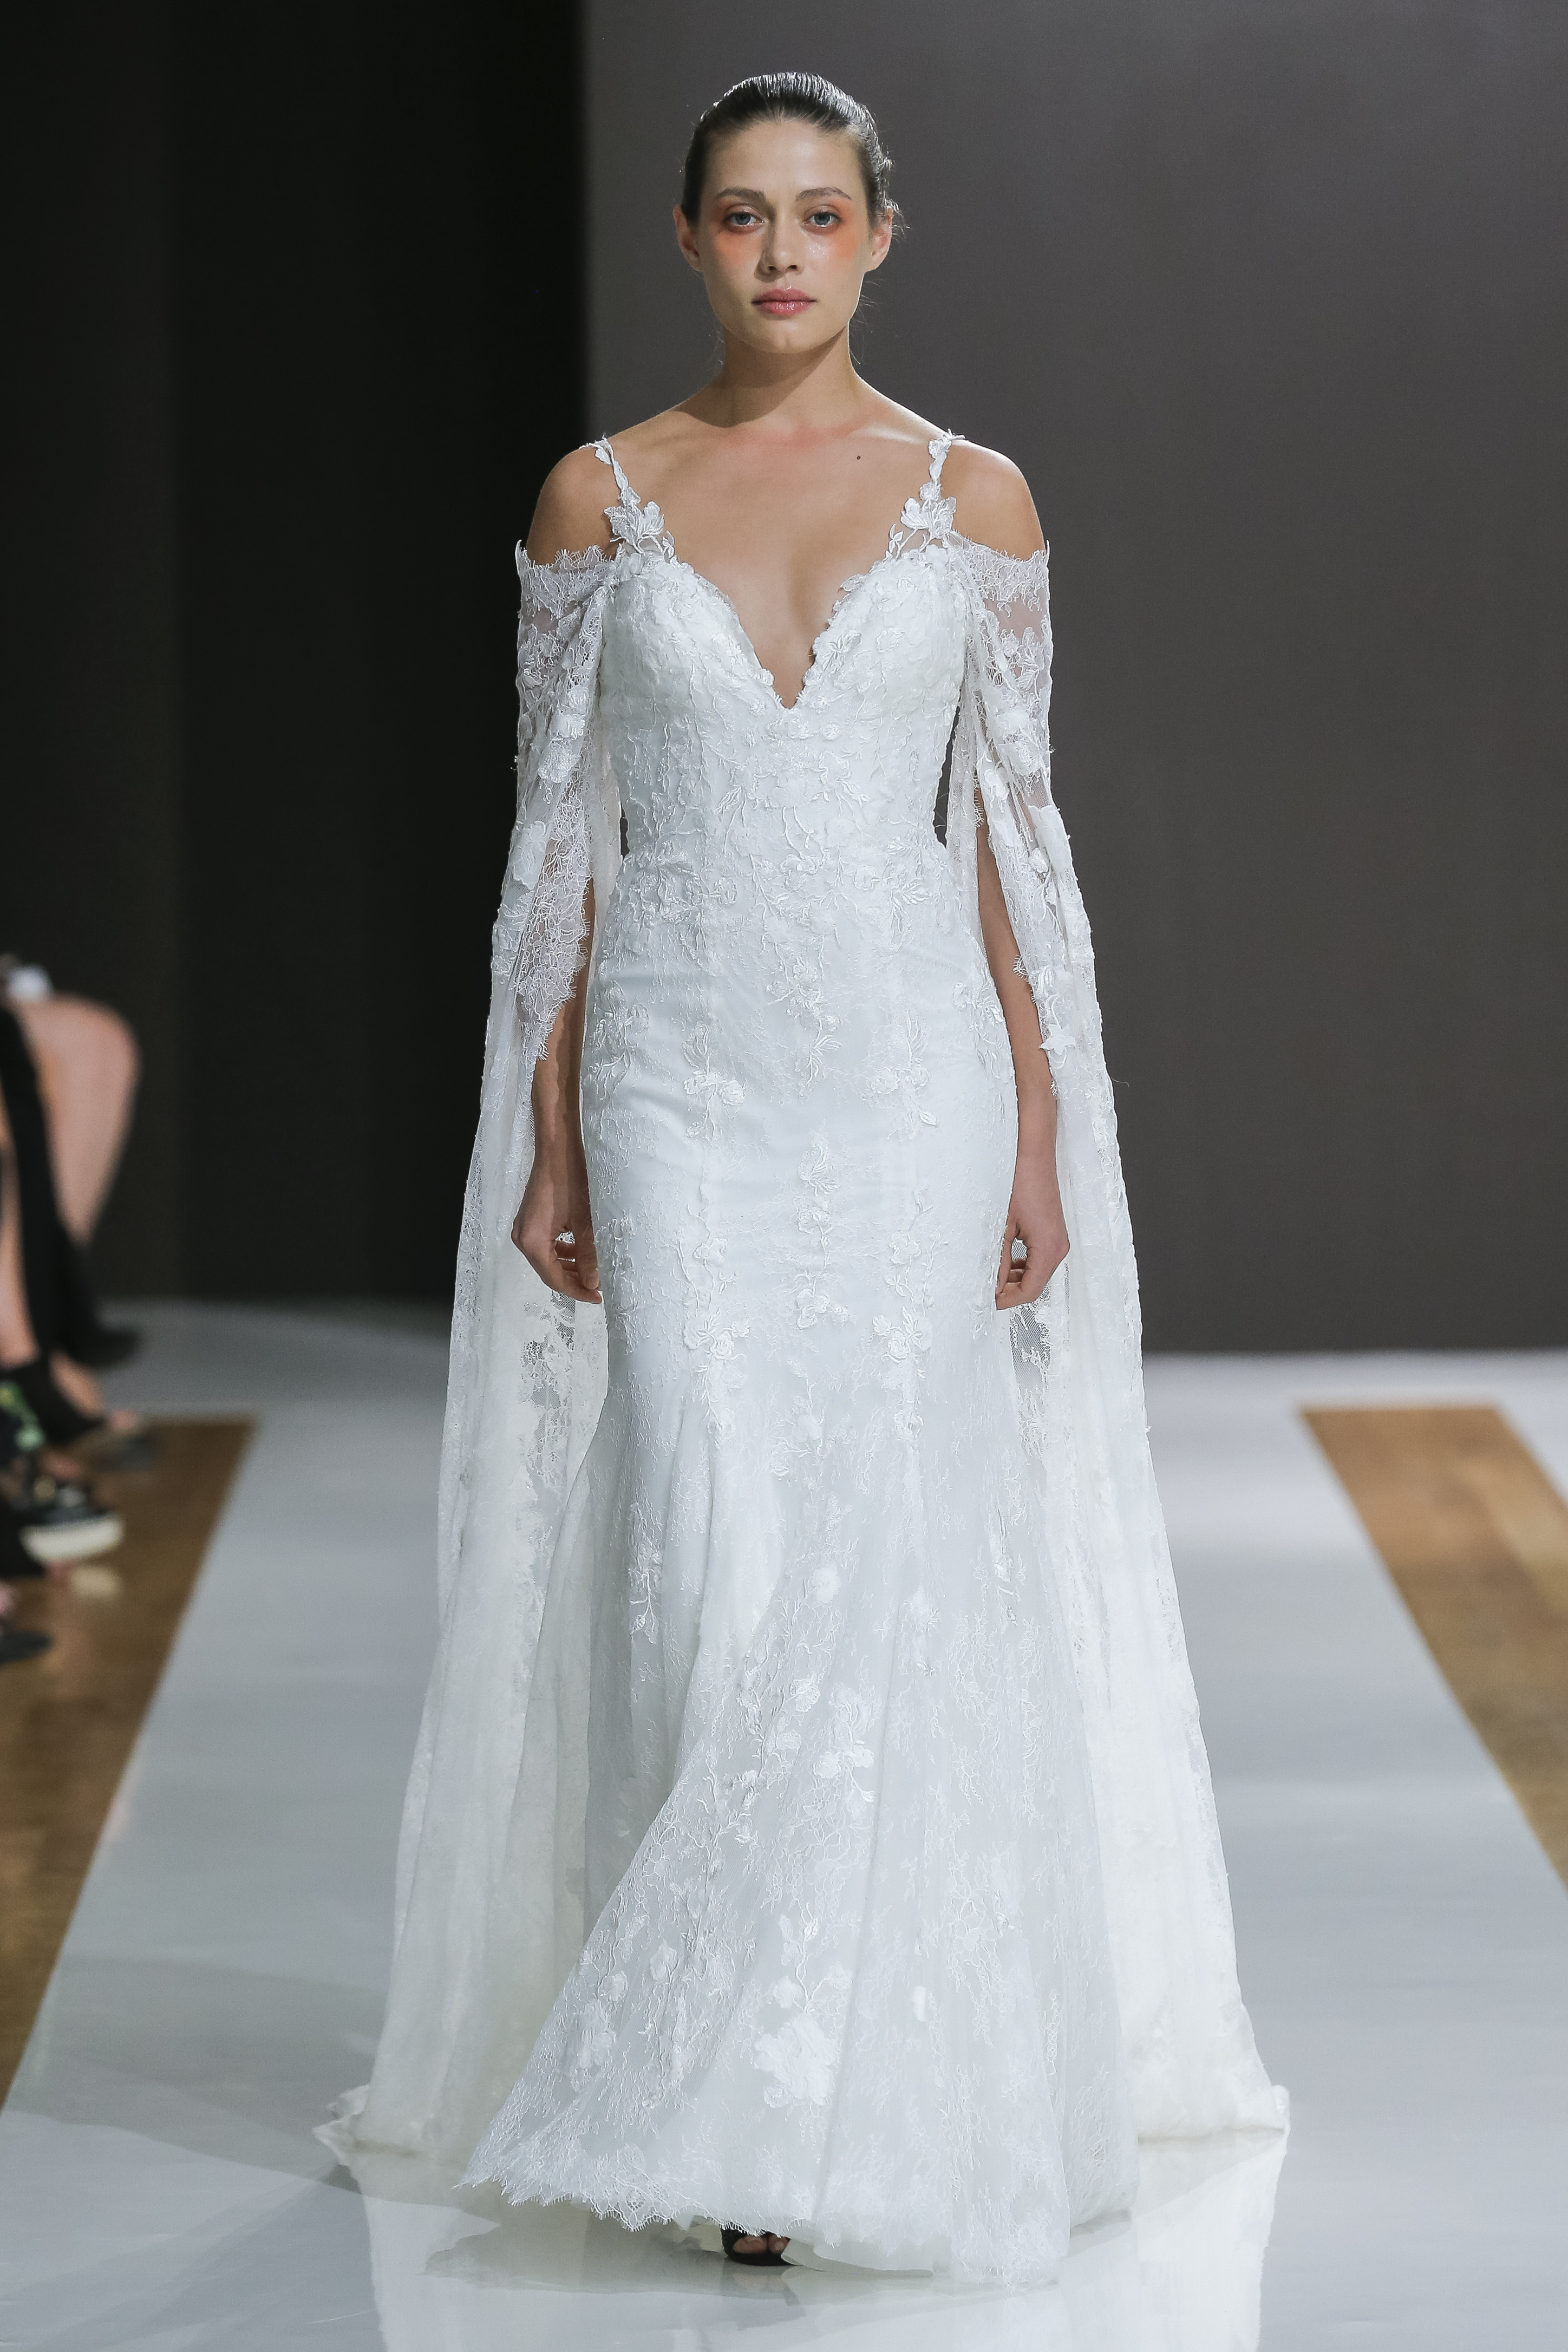 The 5 Biggest Bridal Trends To Expect In 2018 - BridalPulse